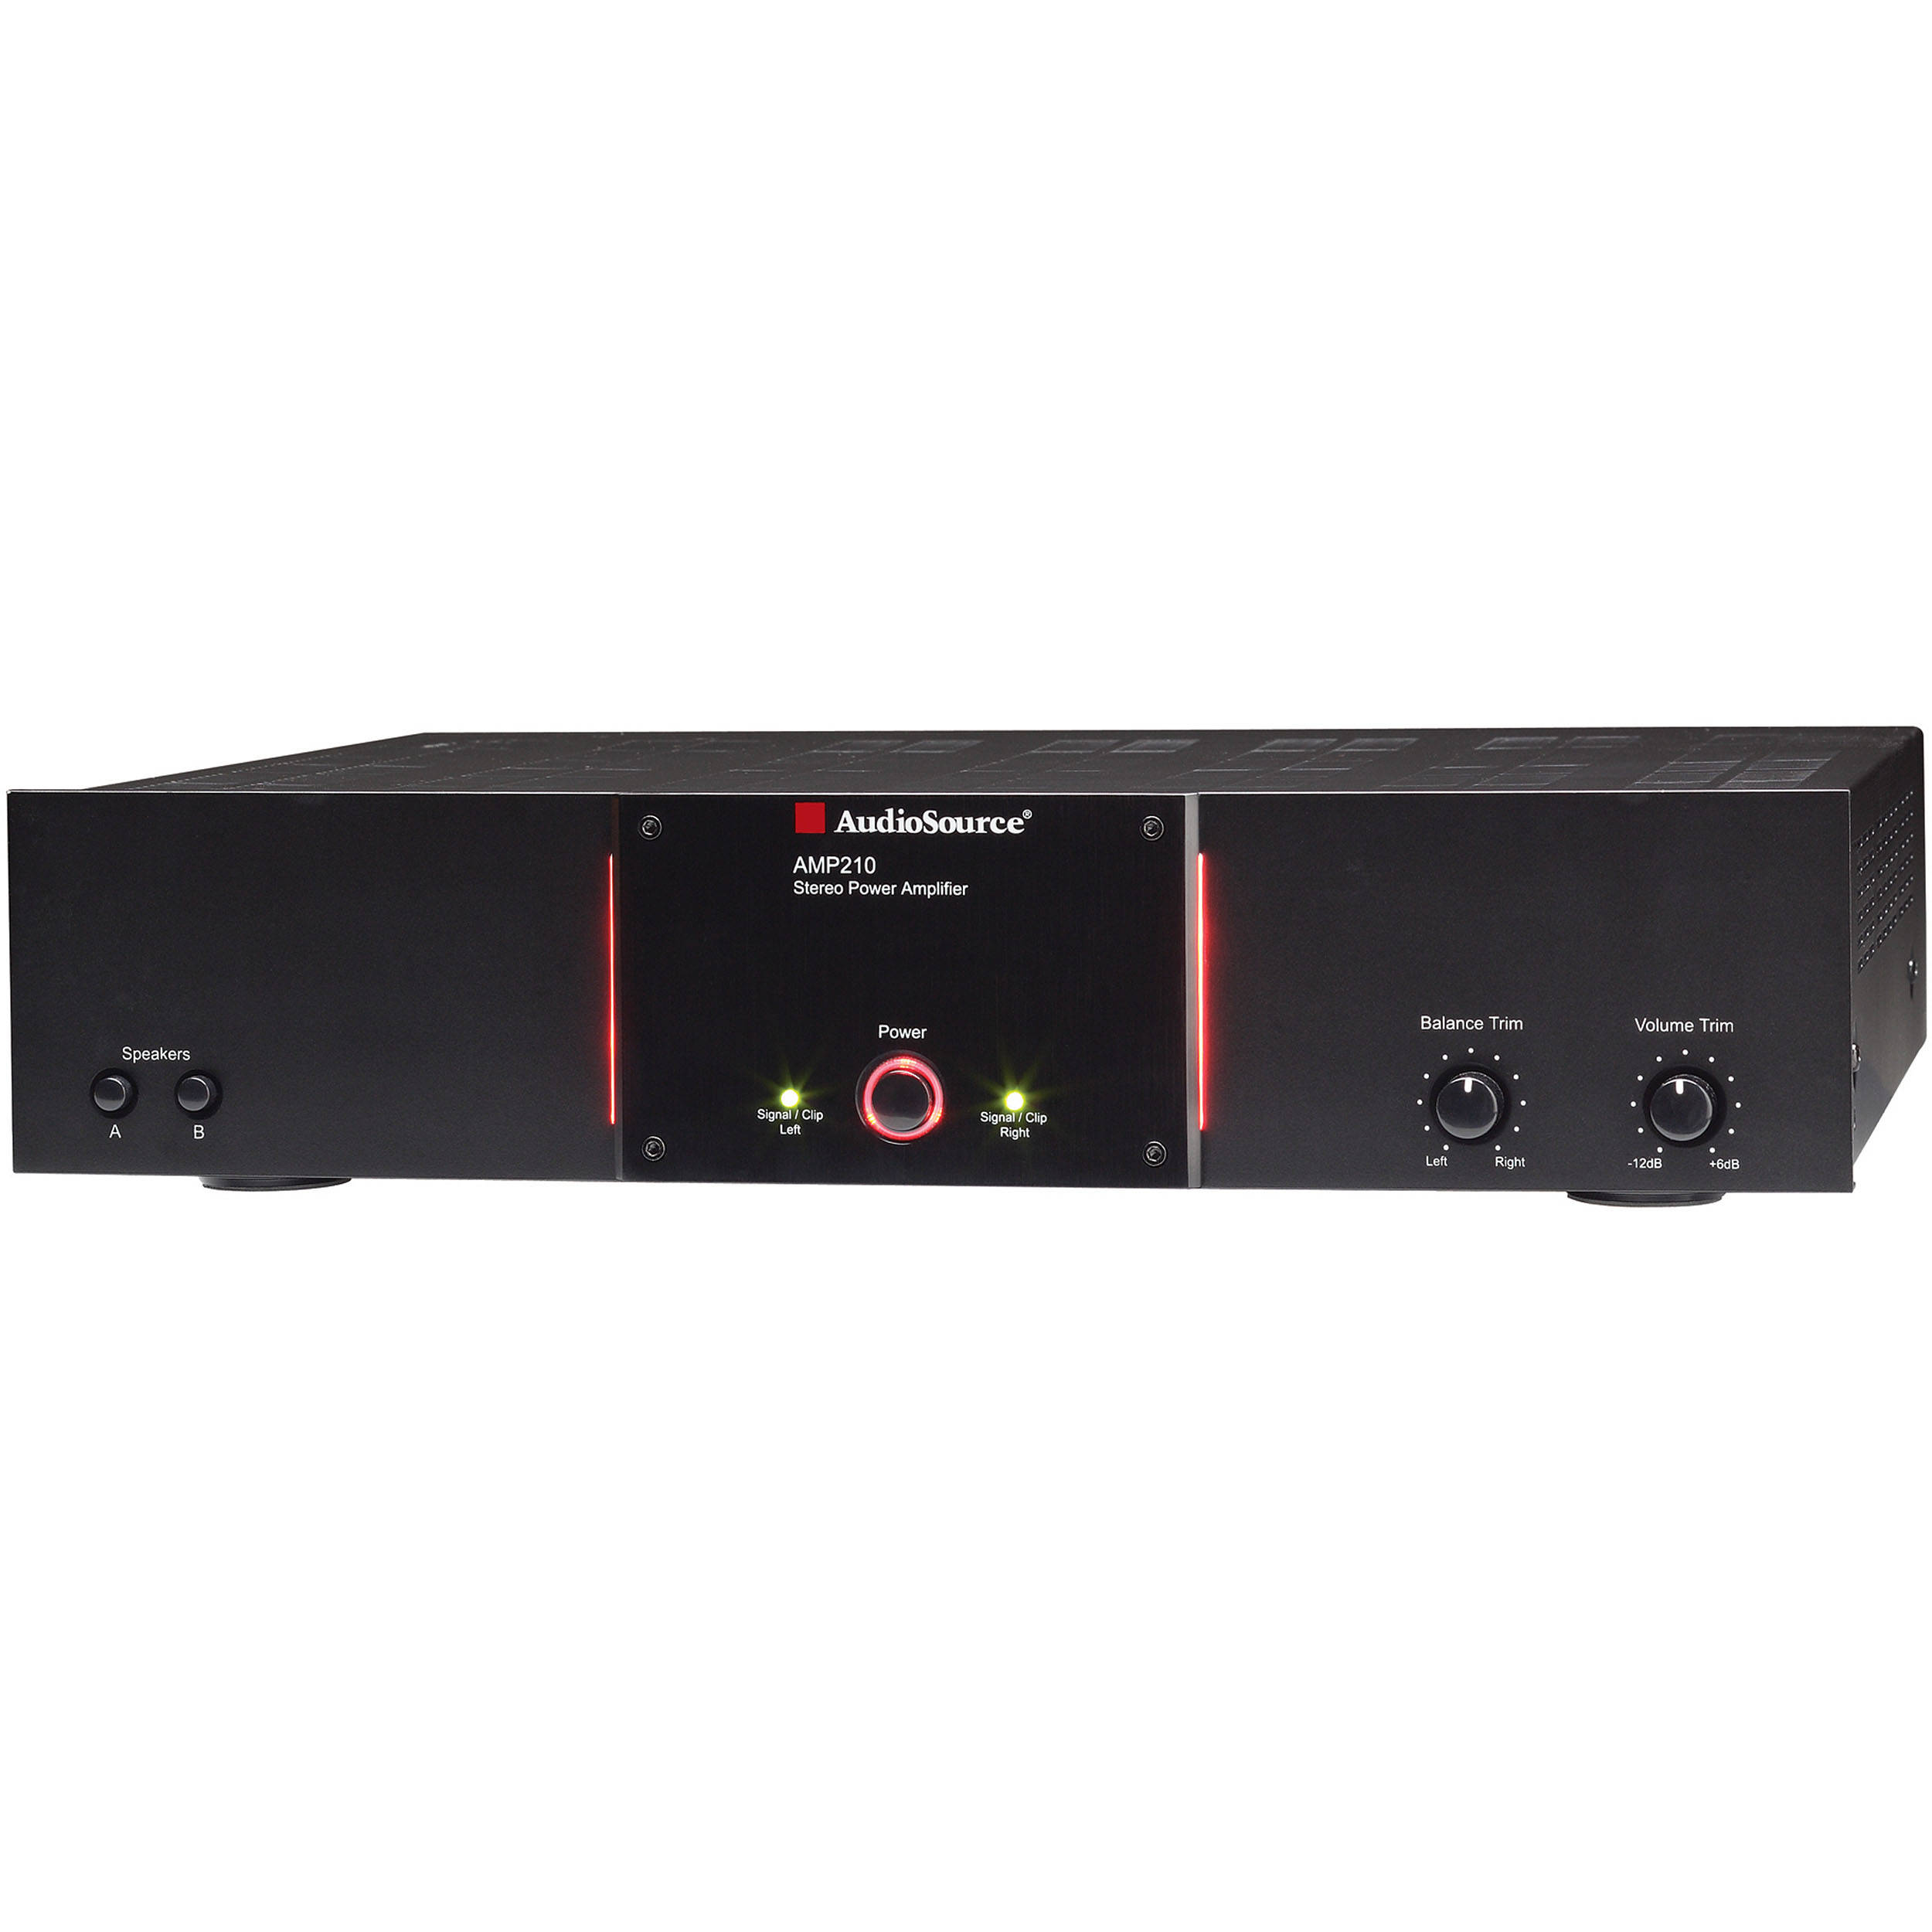 Audiosource Amp210 Power Amplifier Amp 210 Bh Photo Video Circuit Buy Stereo Amplifieraudio